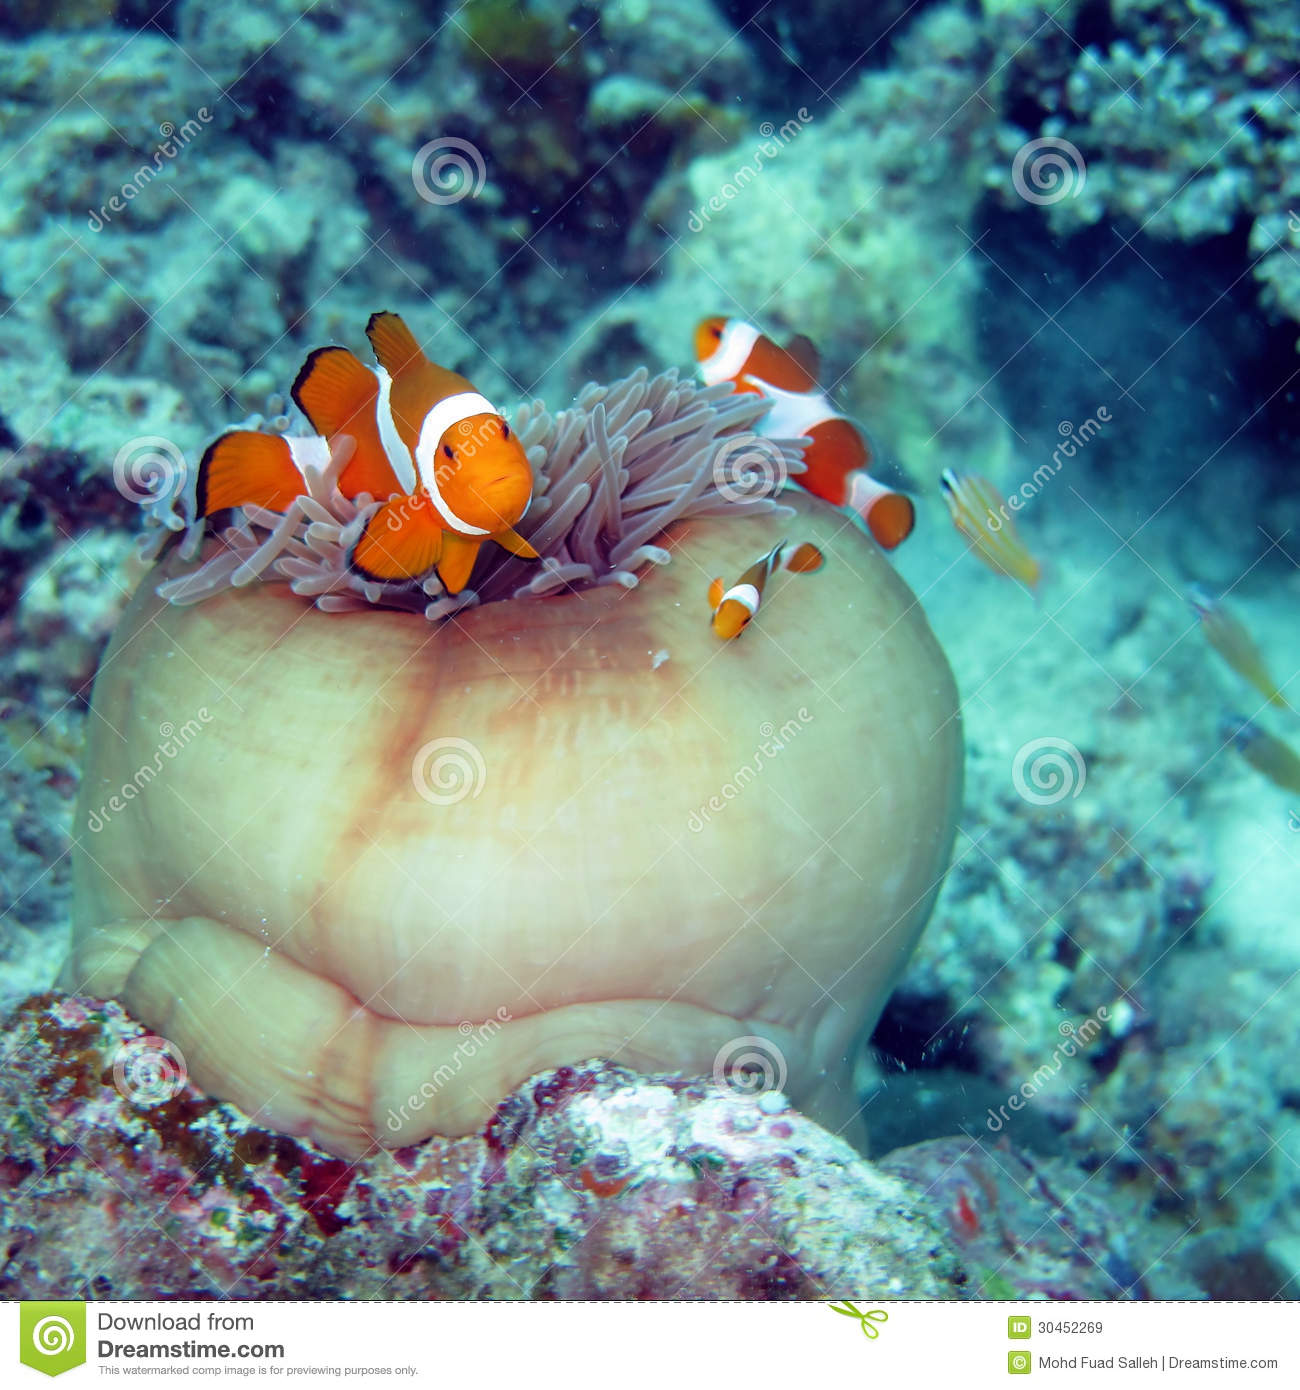 Clown fish finding nemo royalty free stock images image for Finding nemo fish